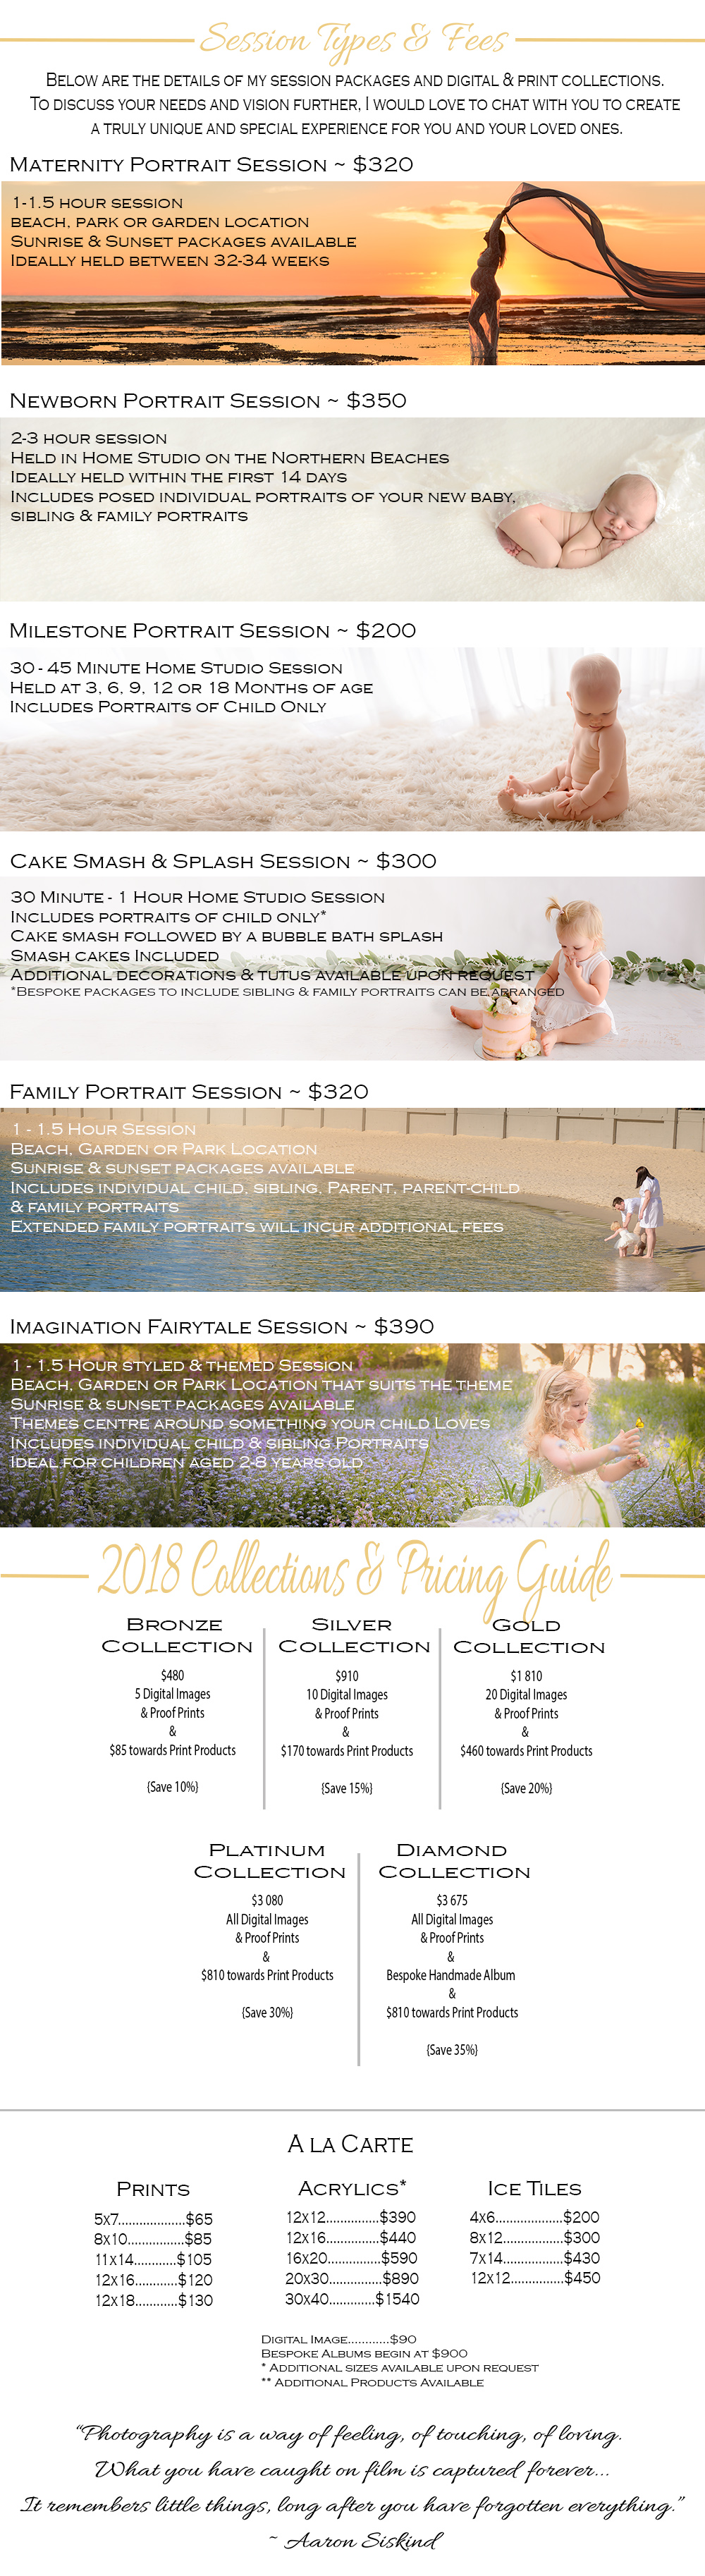 Bree Hulme Photography Pricing guide, collections and products